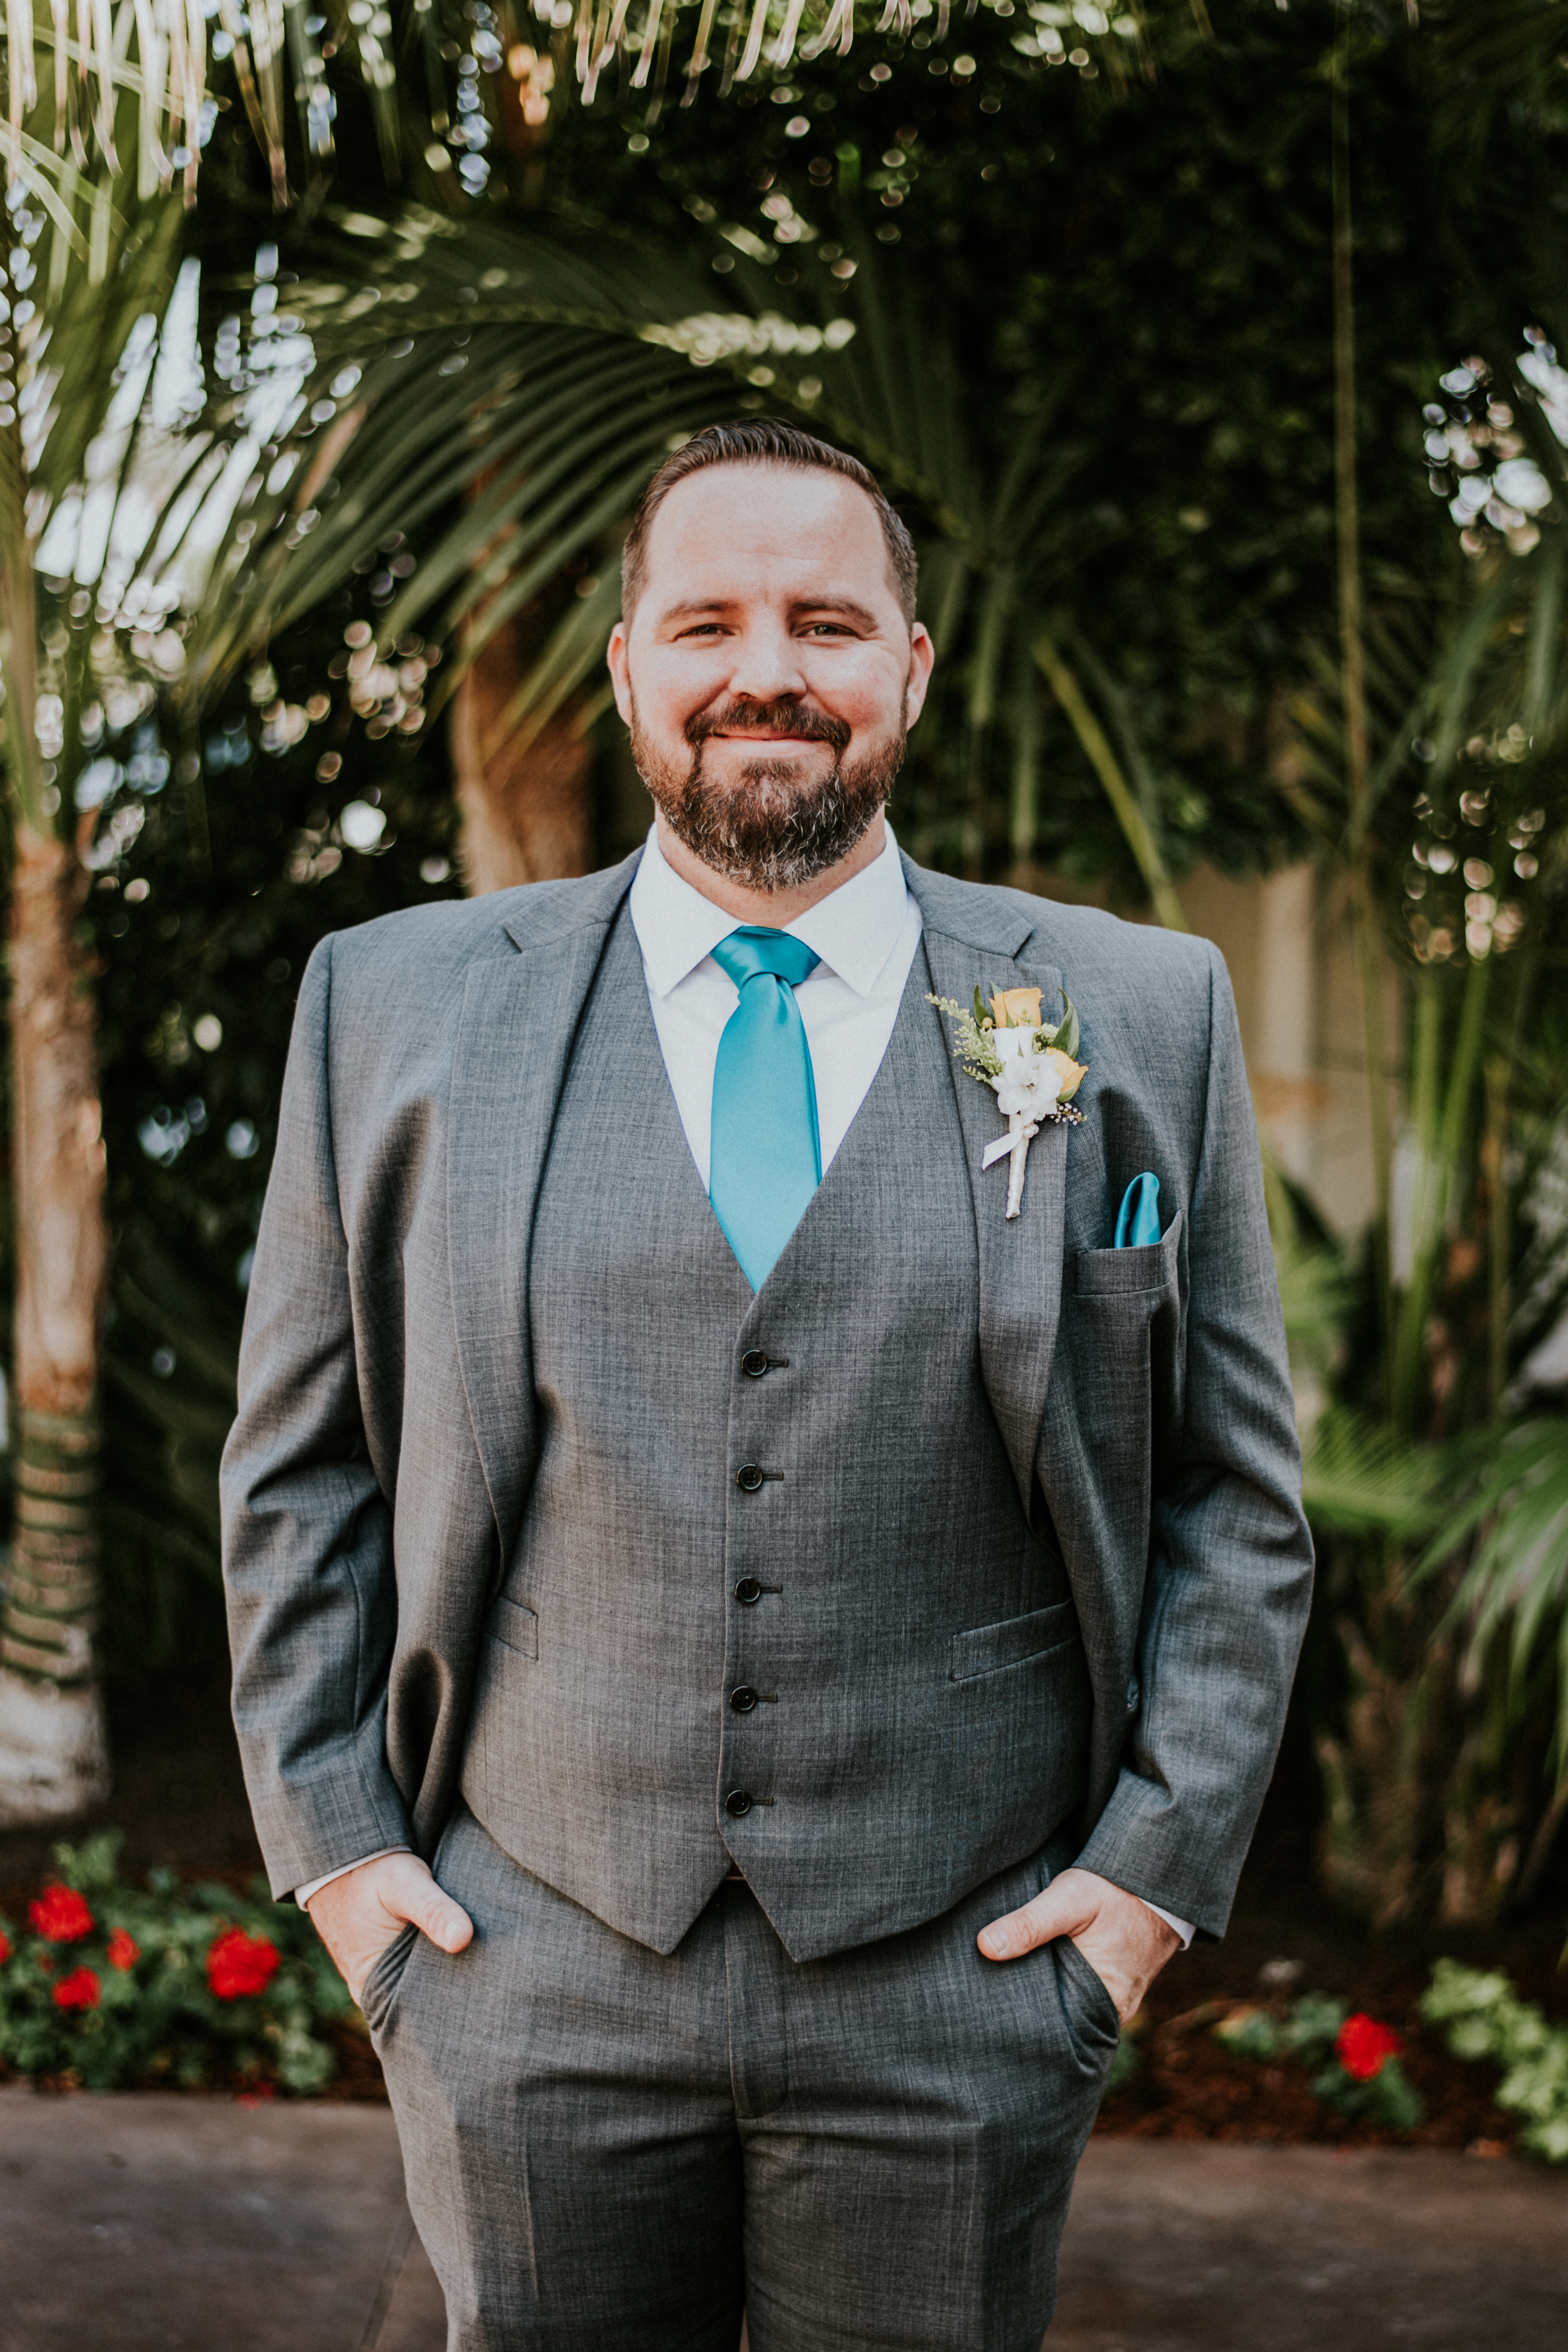 groom posed in suit wedding day photography california wedding